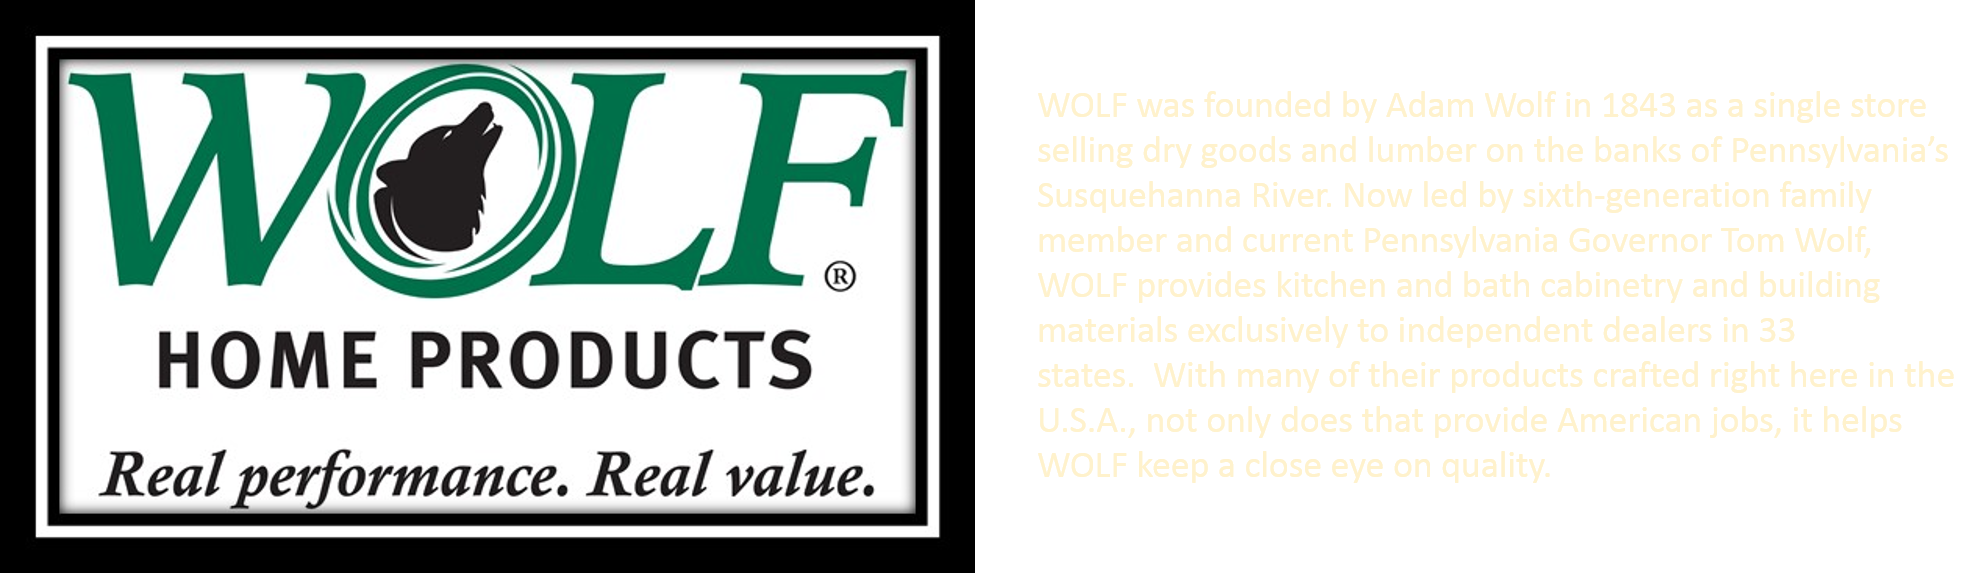 Wolf Logo with Verbiage